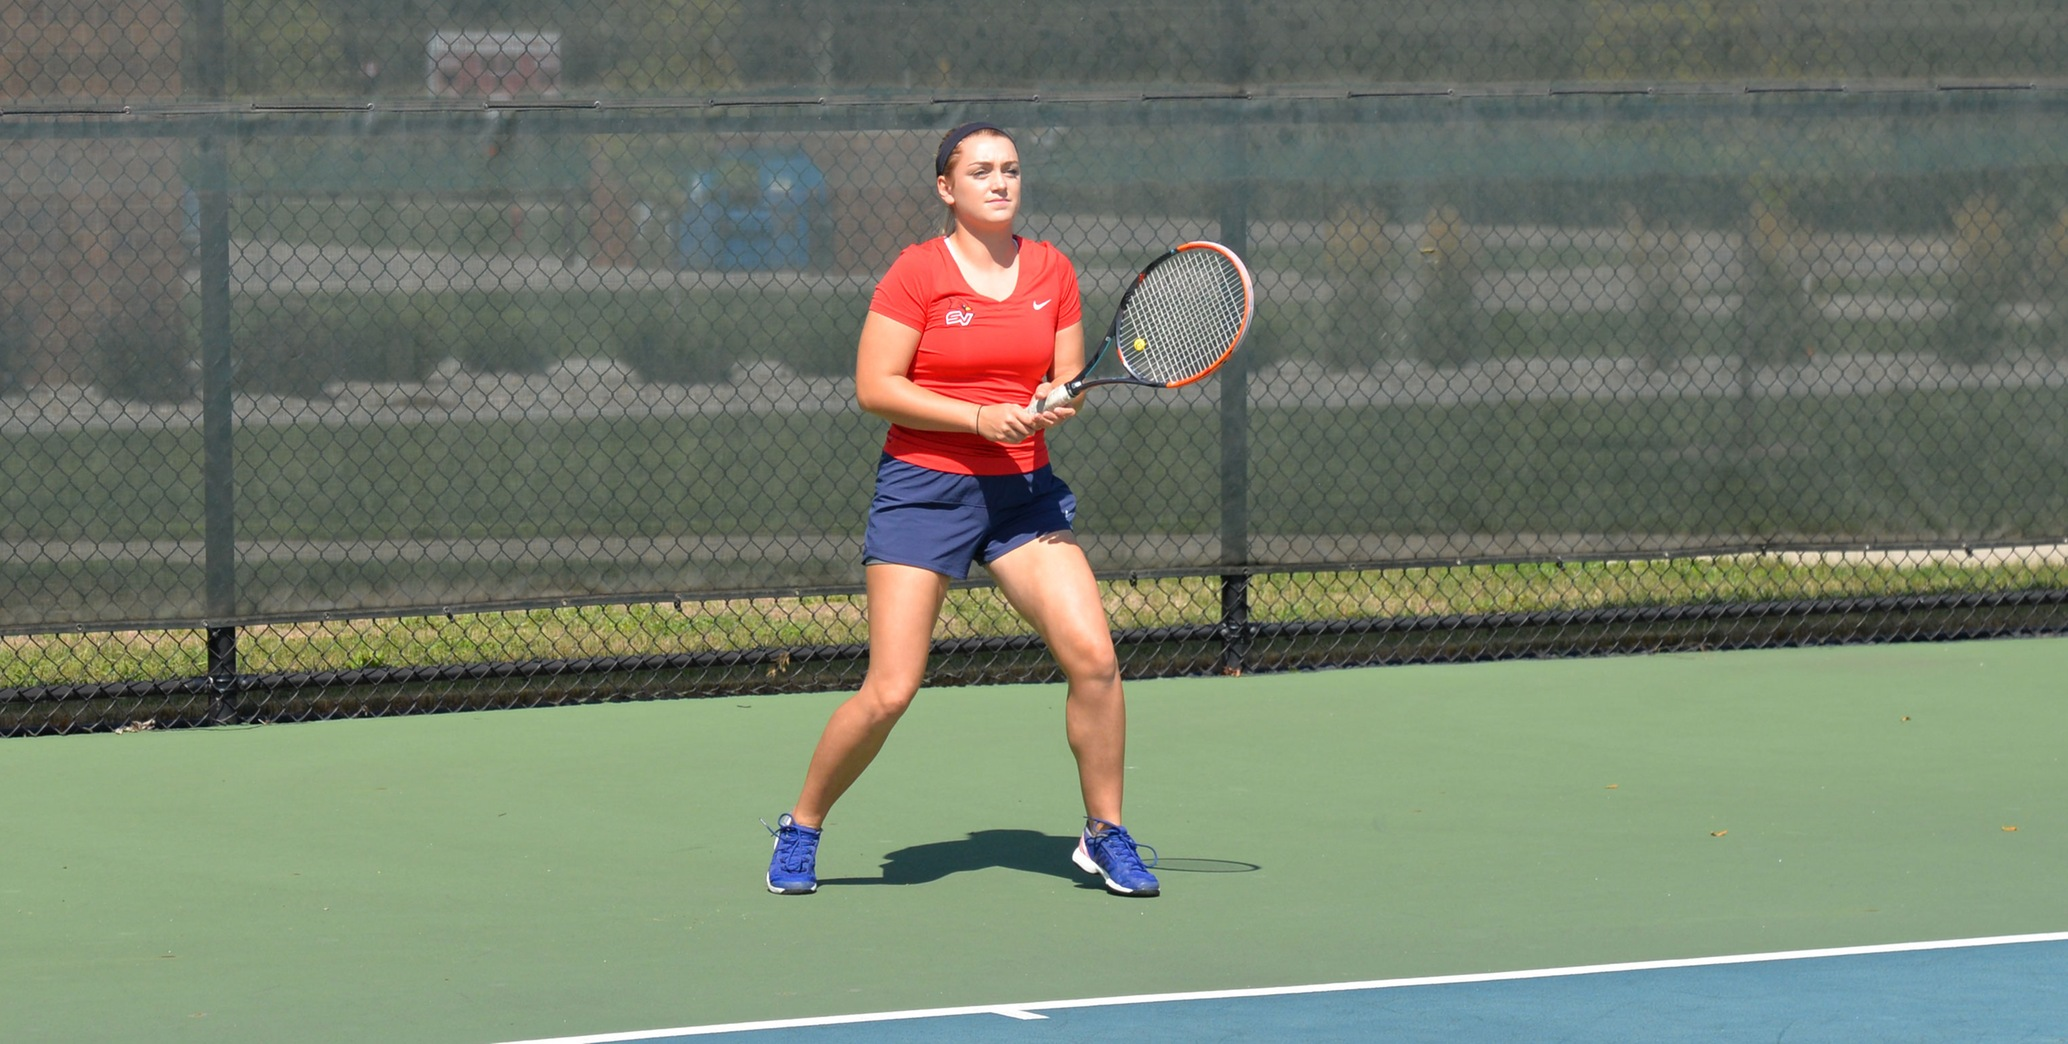 Cardinals Open Spring Season With 9-0 Win Over Winona State